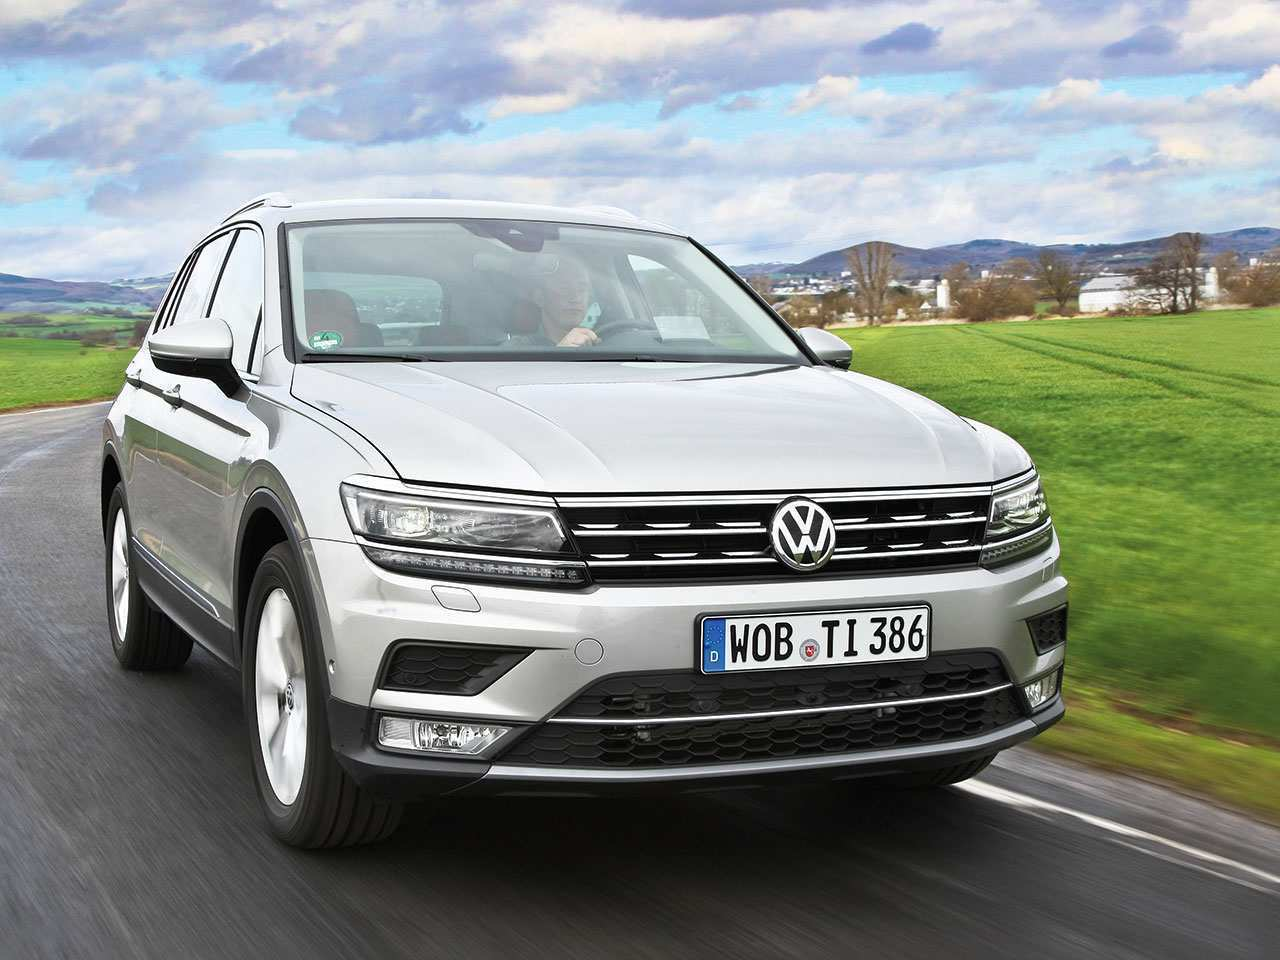 62 Best 2020 VW Tiguan Review